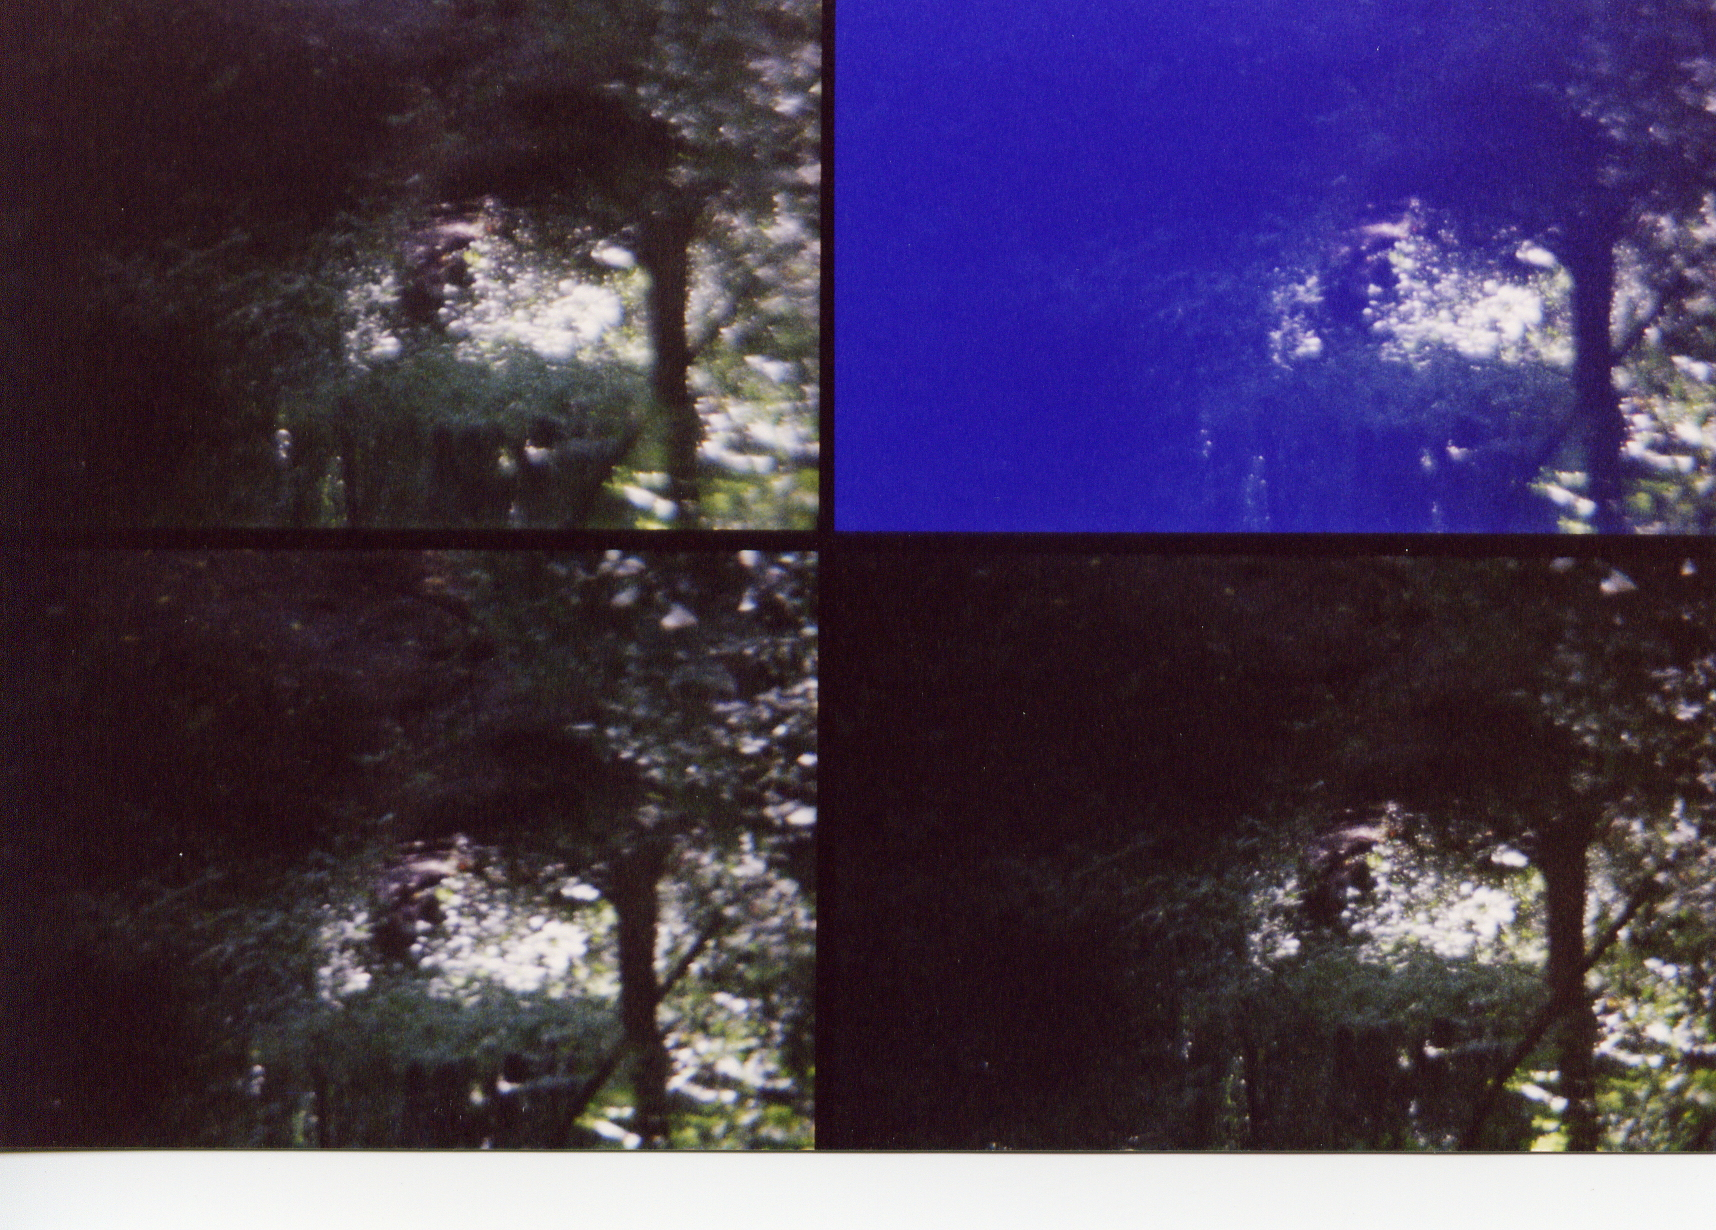 Four lens camera photograph with unexplained anomaly